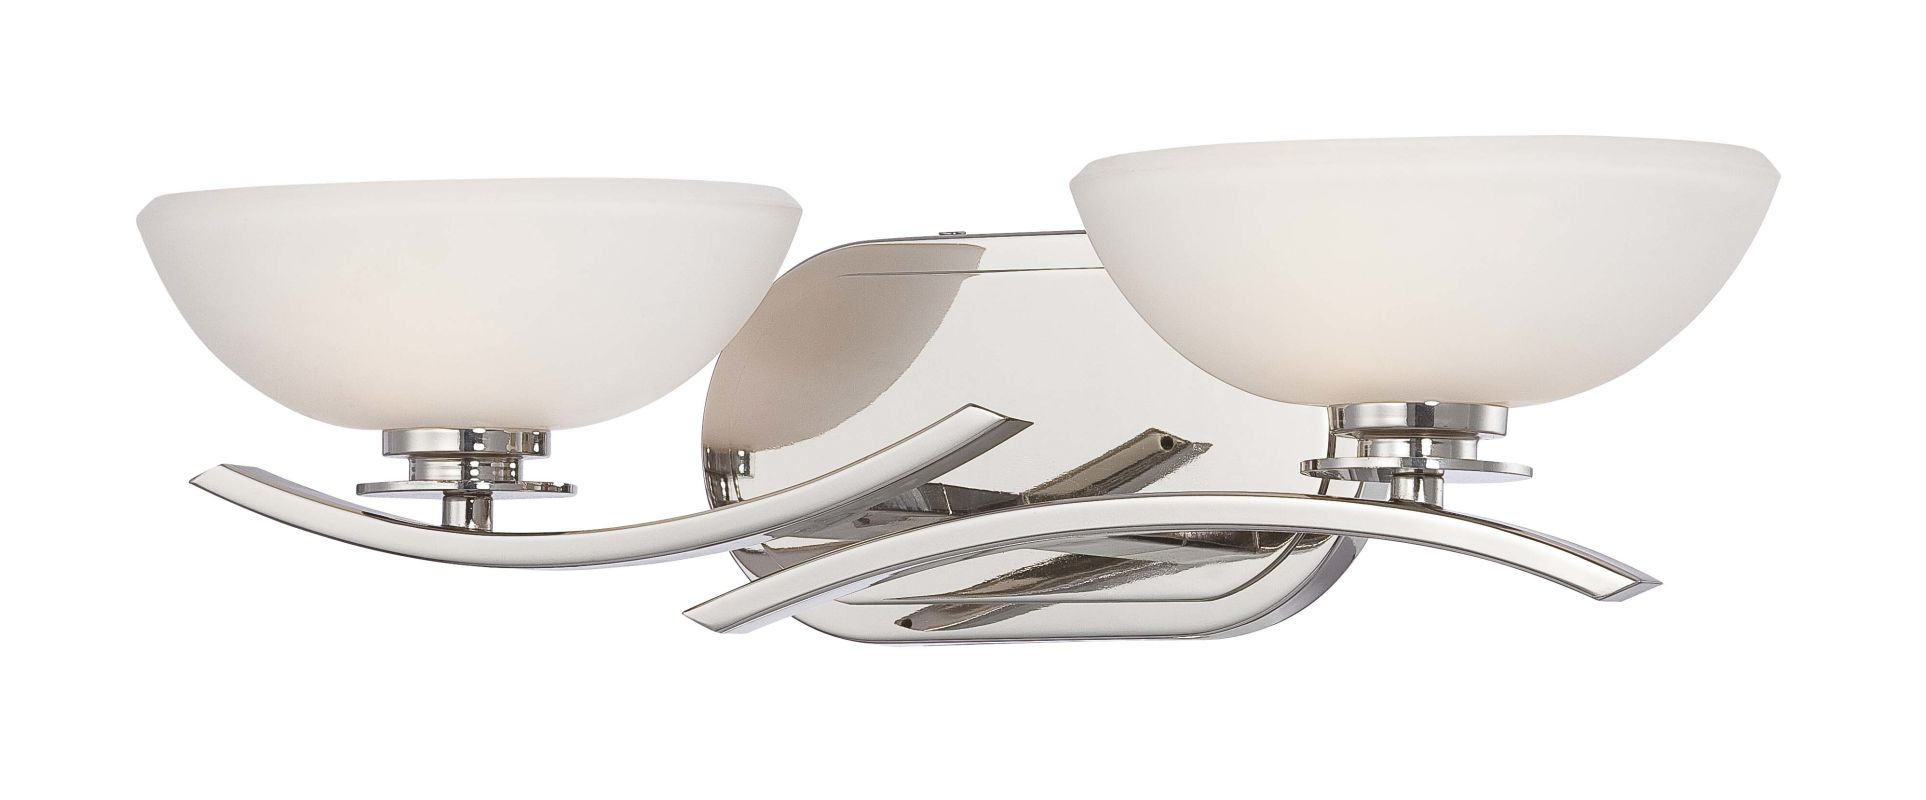 Minka Lavery 6922 2 Light Bathroom Vanity Light from the Signatures